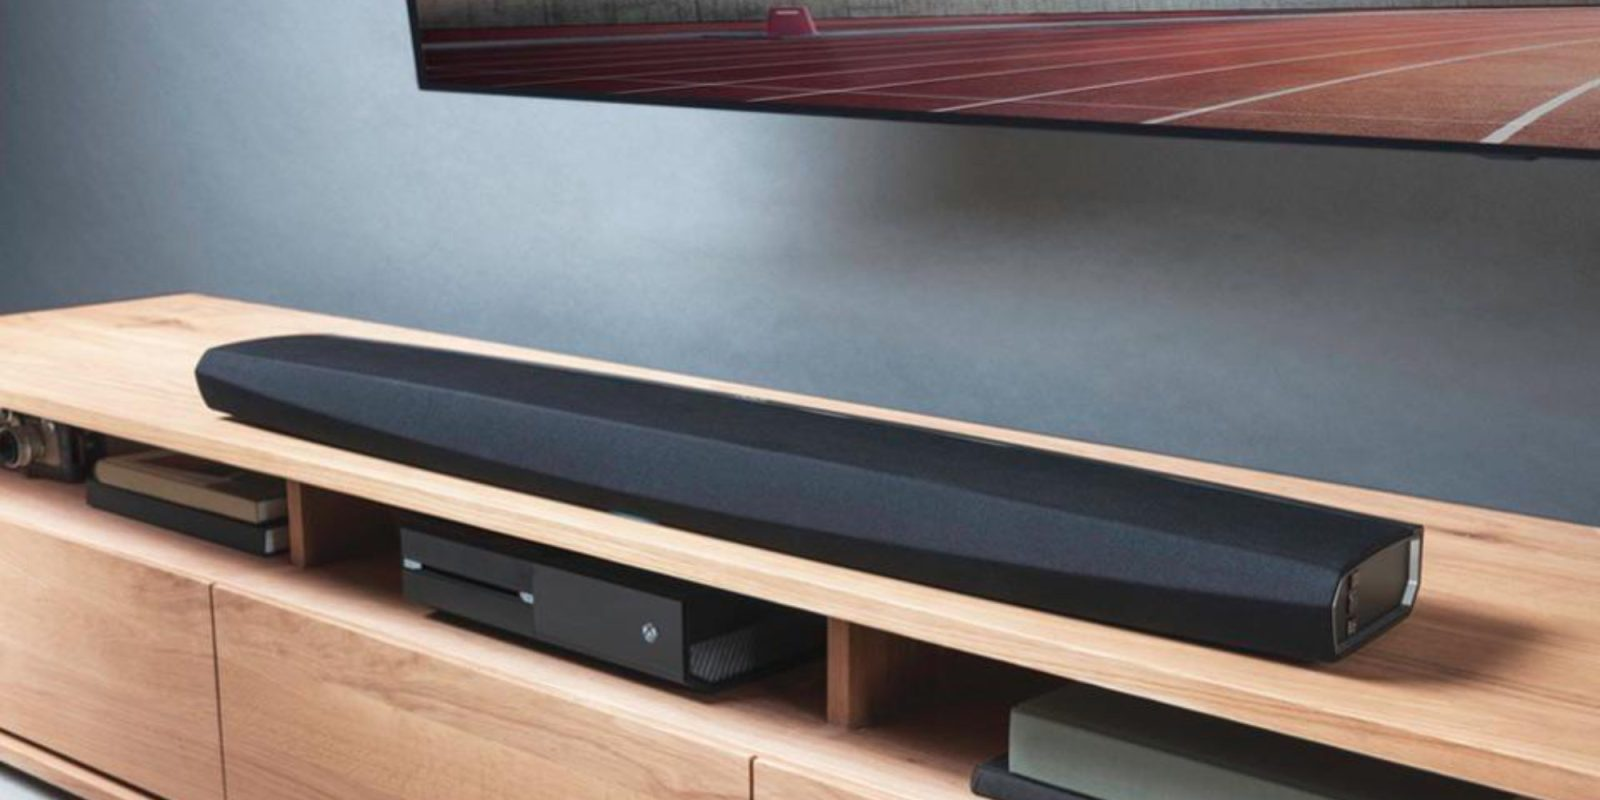 Denon targets Sonos Beam with two new AirPlay 2 sound bars